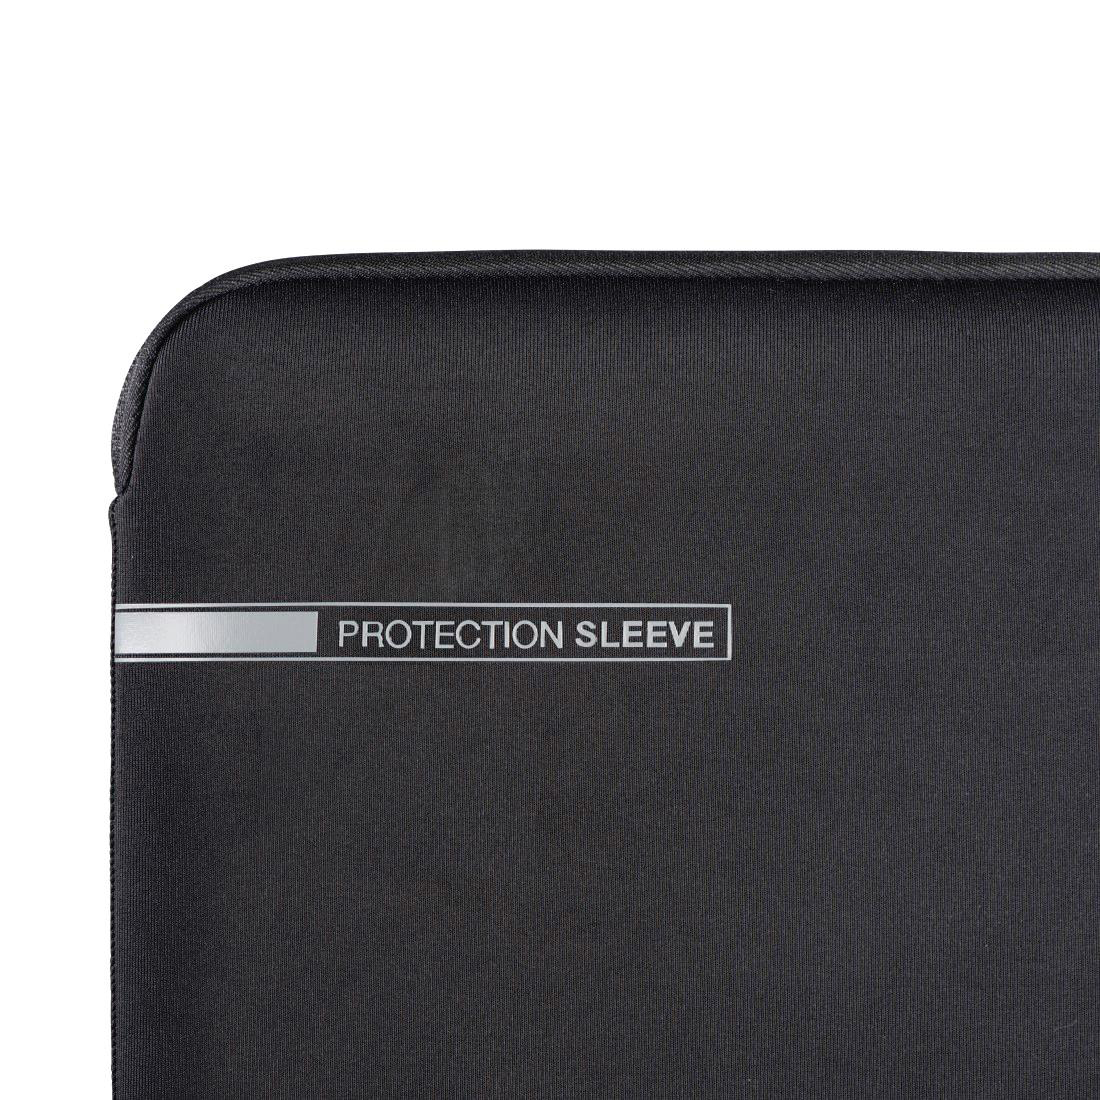 Hama 15.6inch Notebook Sleeve Neoprene Black Ref 00101546